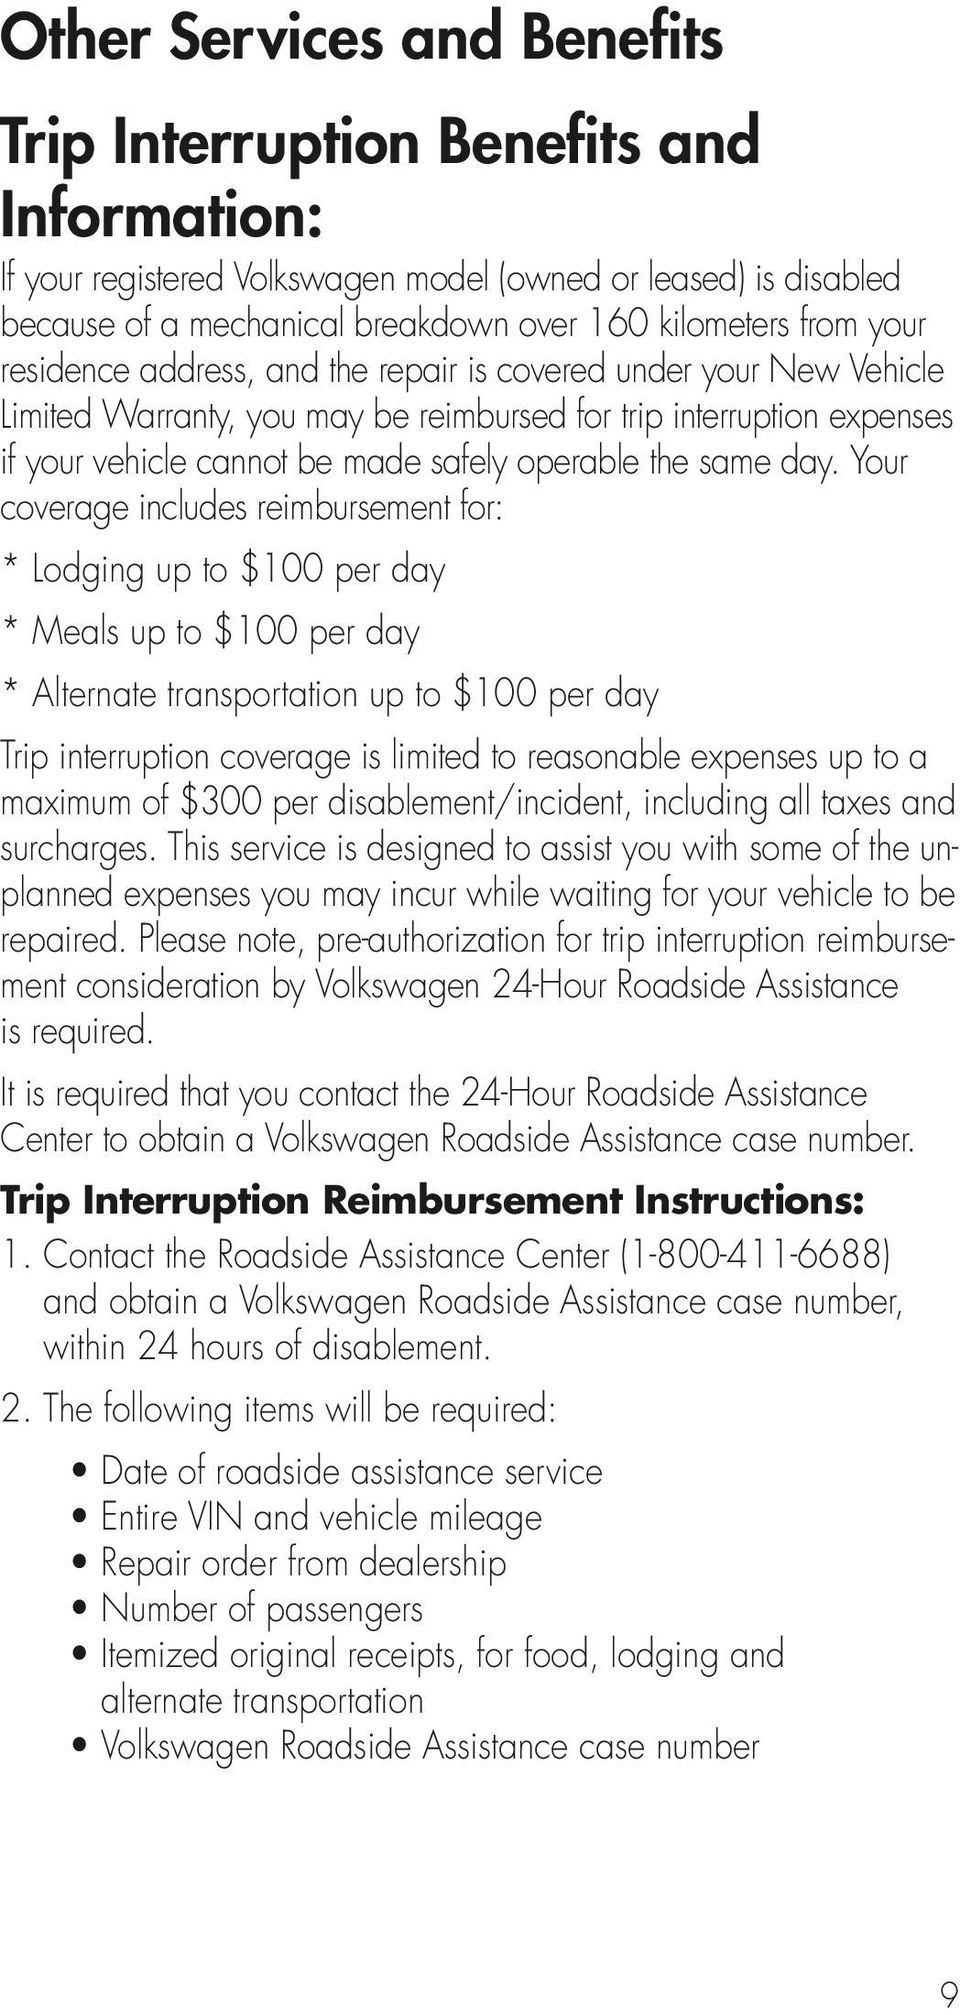 day. Your coverage includes reimbursement for: * Lodging up to $100 per day * Meals up to $100 per day * Alternate transportation up to $100 per day Trip interruption coverage is limited to